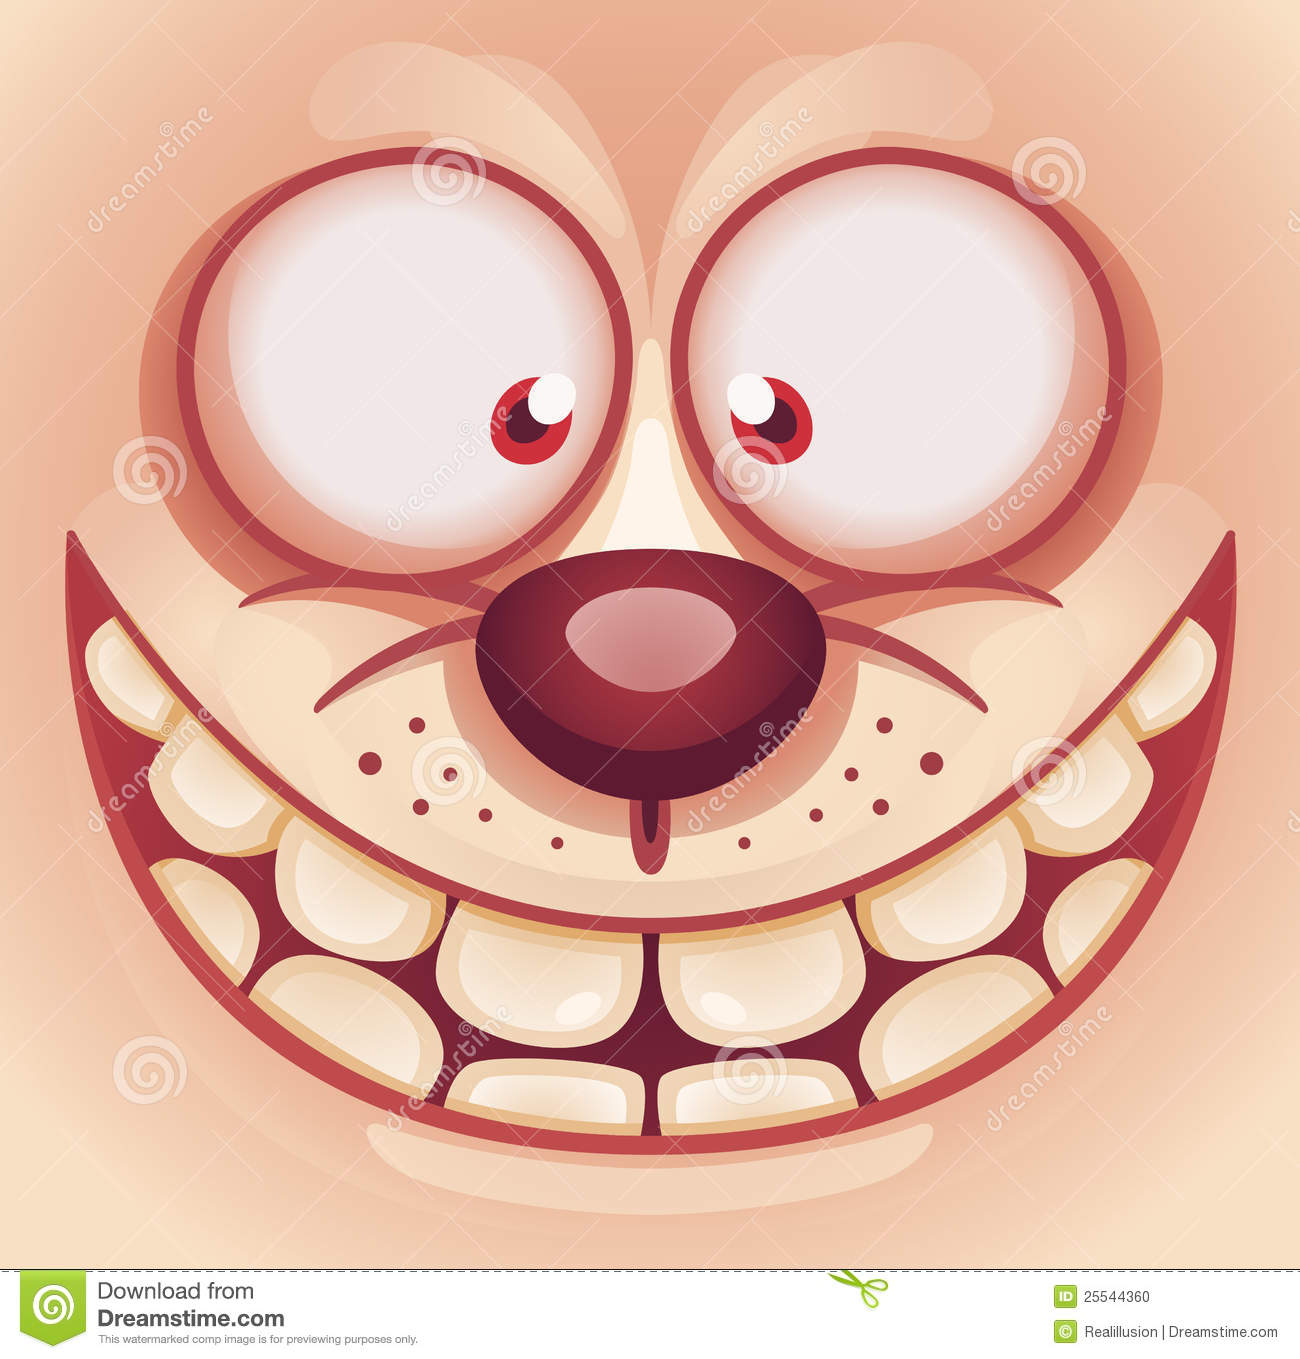 Animal Face Stock Photo - Image: 25544360 - photo#7